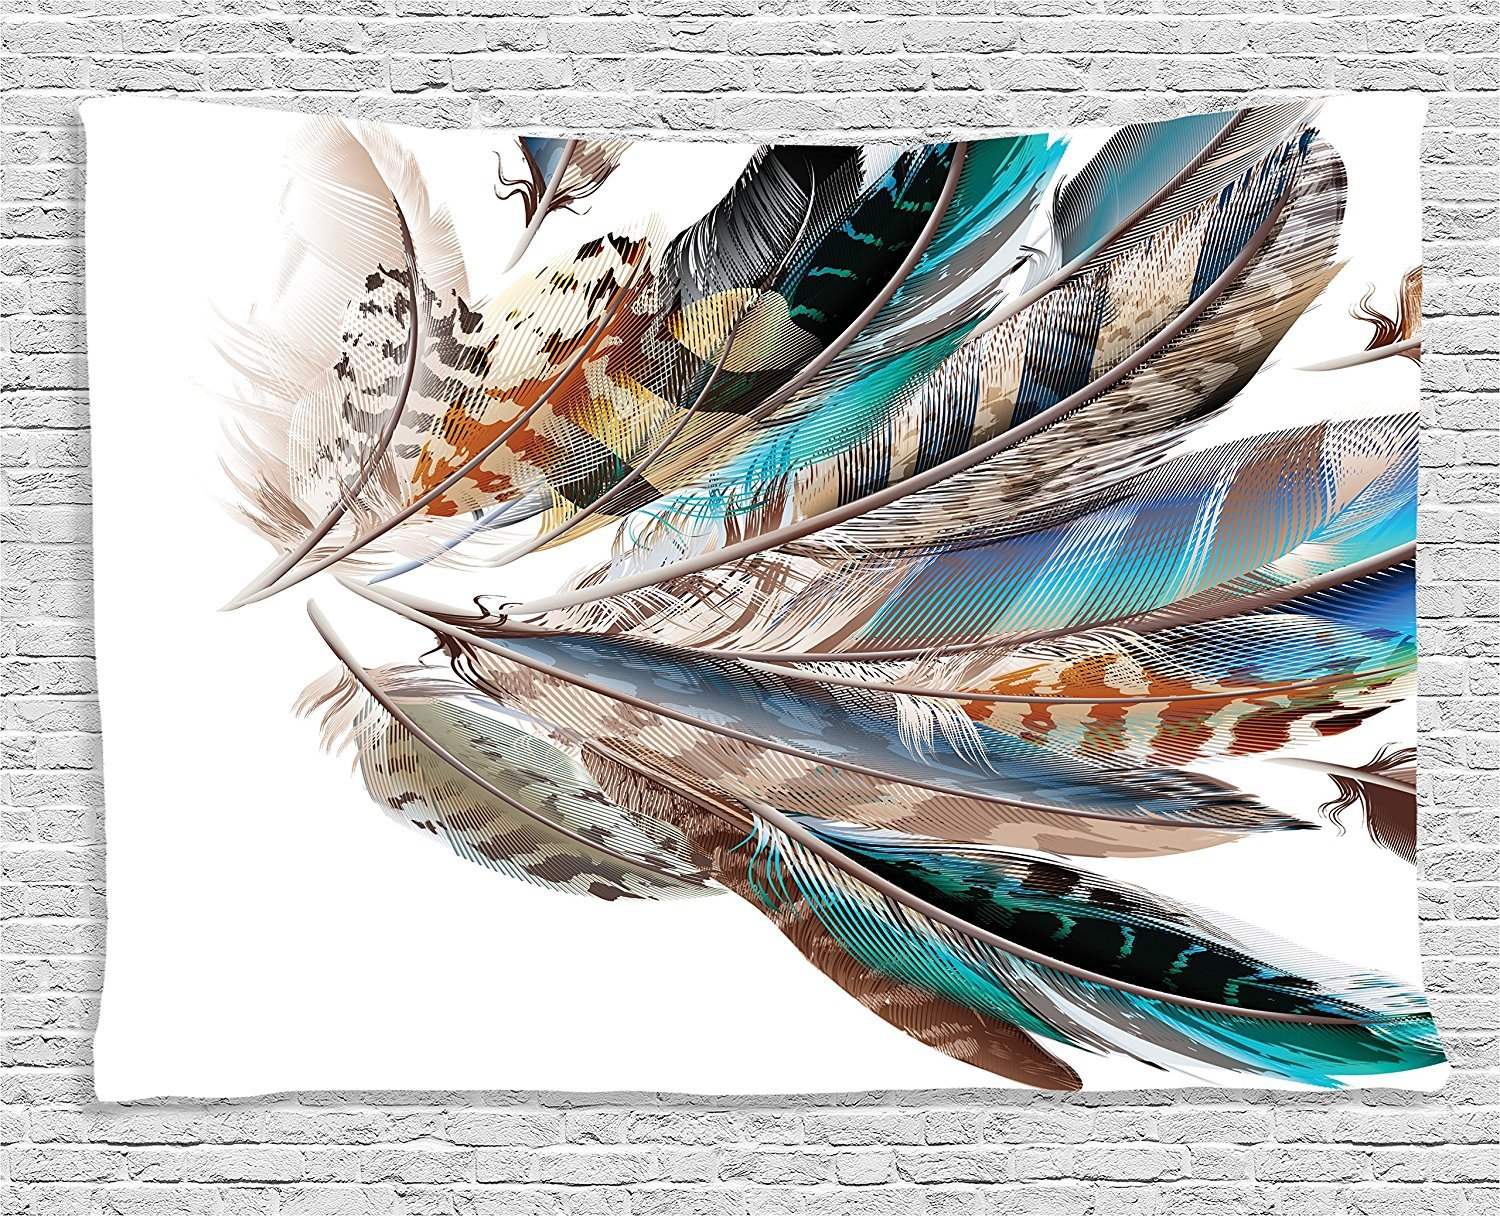 asddcdfdd Feather House Decor Tapestrye, Vaned Types and Natal Contour Flight Feathers Animal Skin Element Print, Wall Hanging for Bedroom Living Room Dorm, 60 W X 40 L Inches, Teal Brown